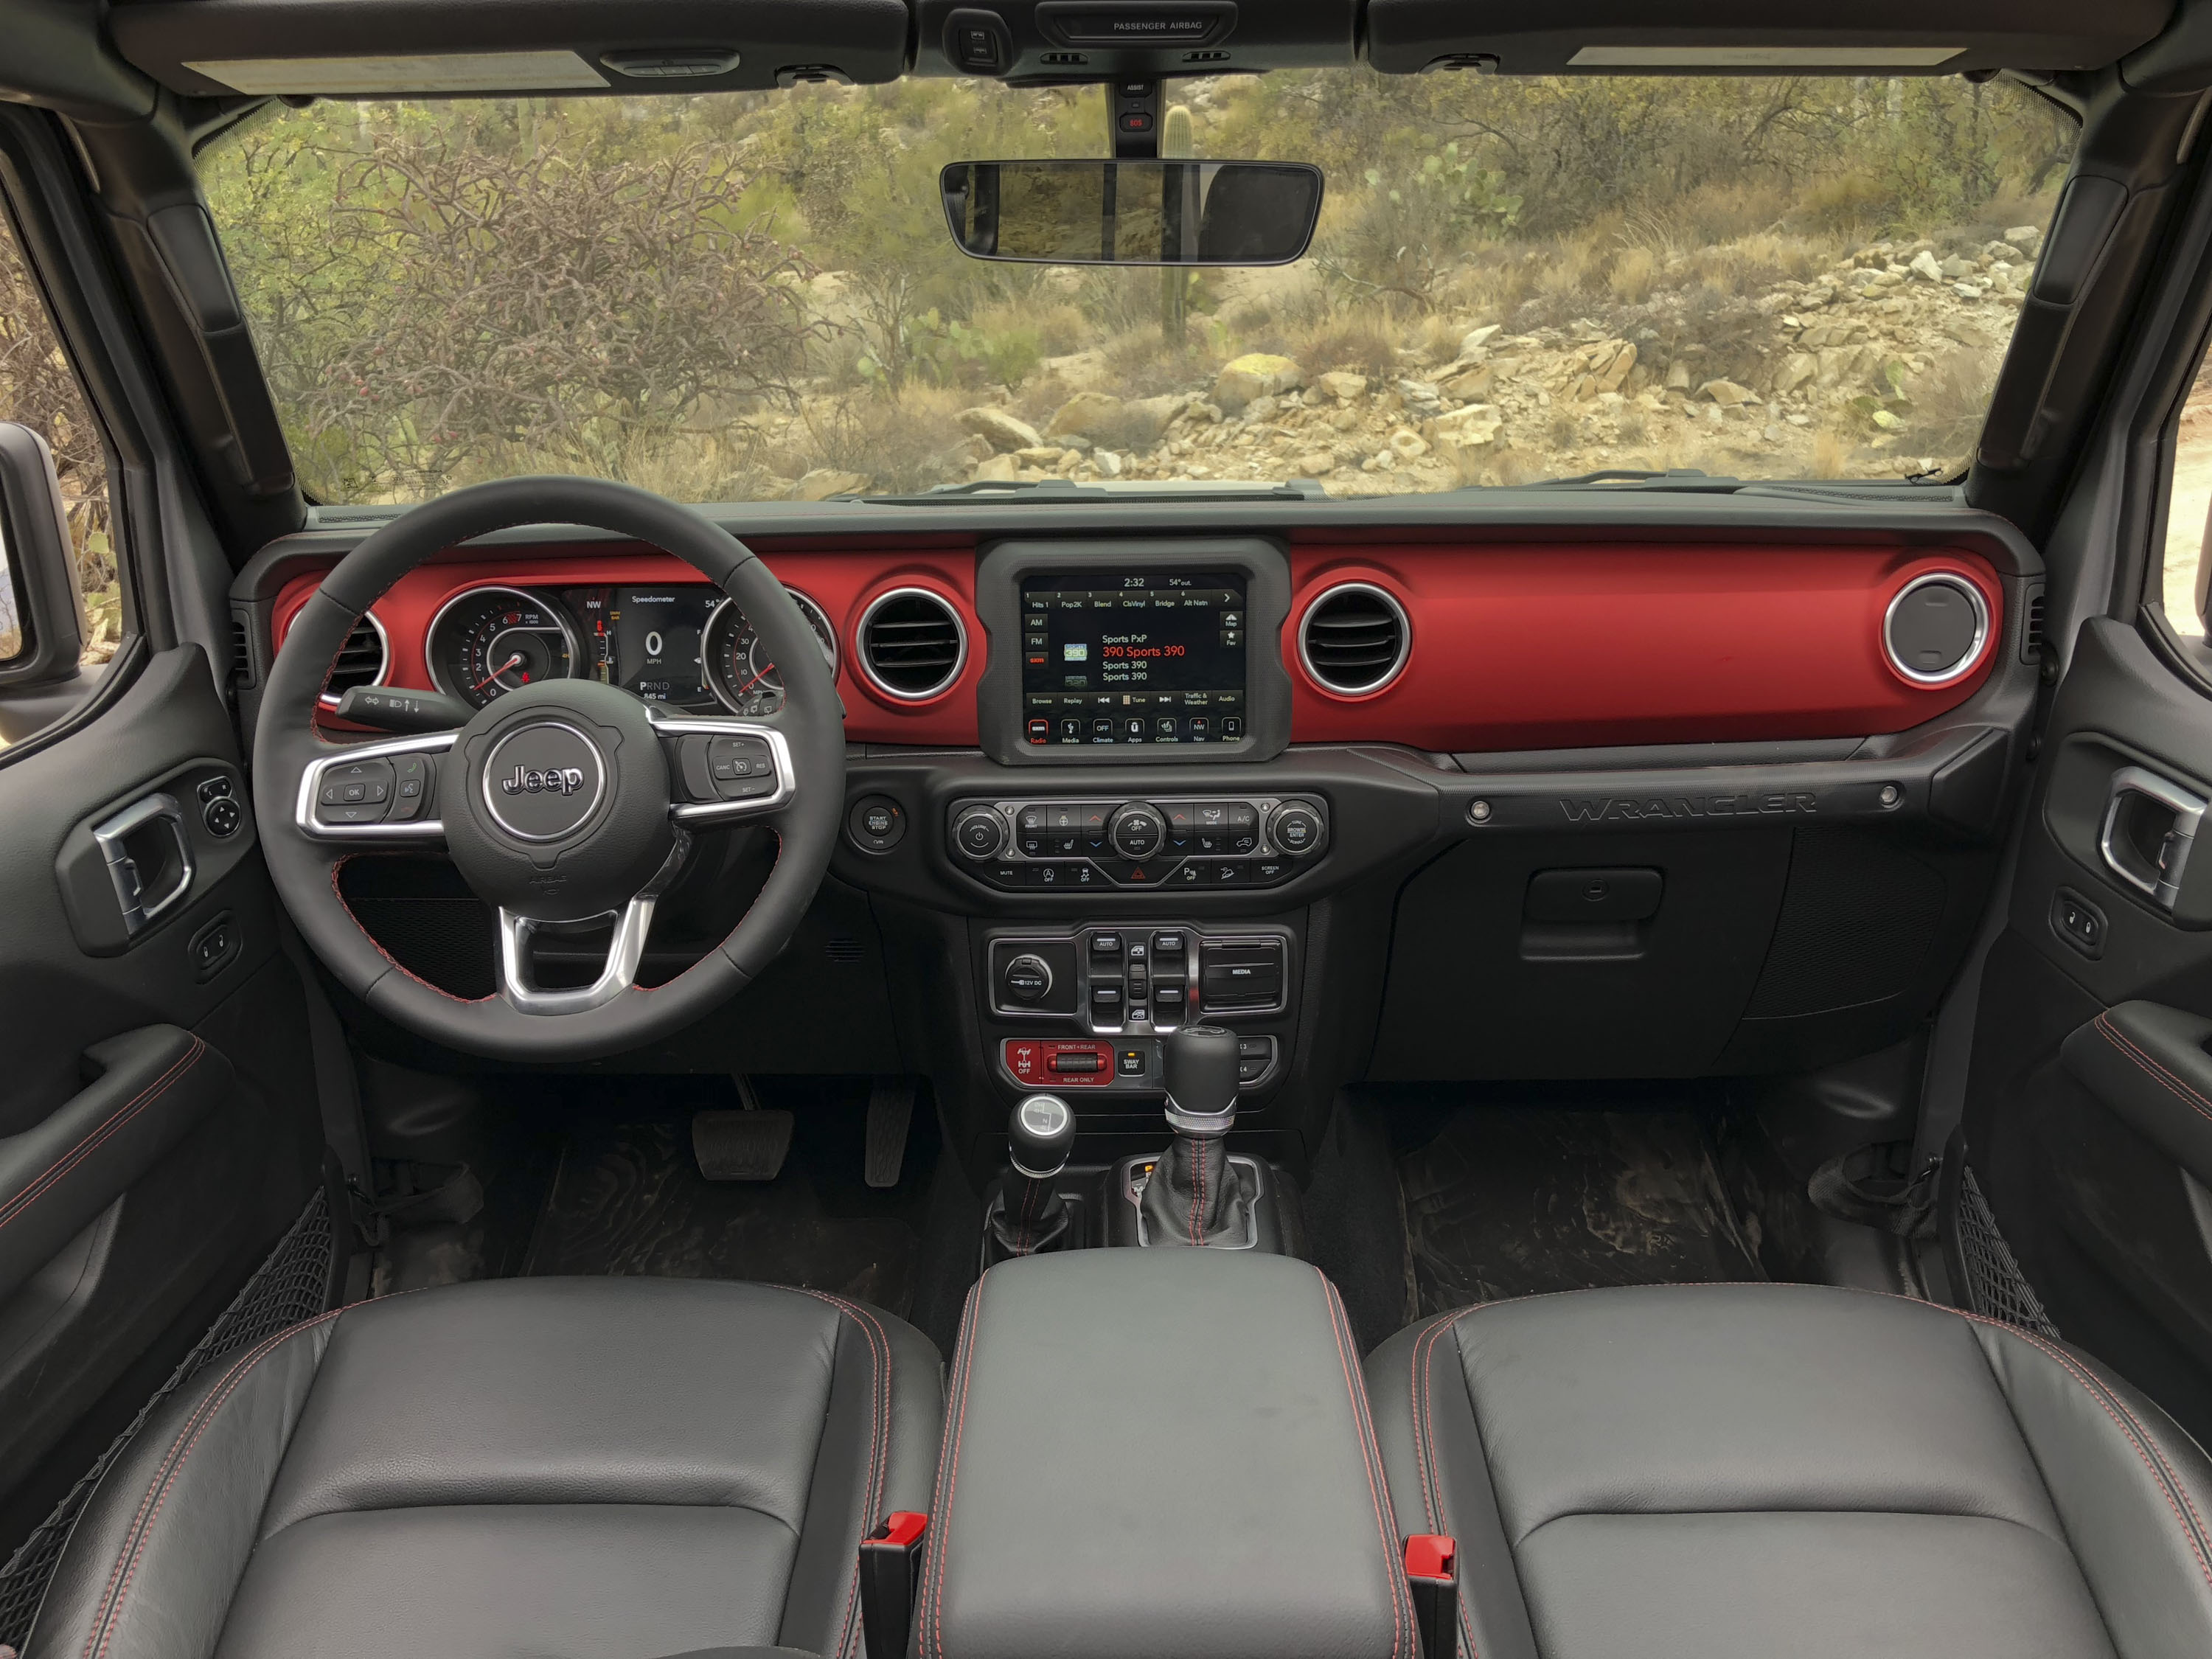 A Detailed Look At The 2018 Jeep Wrangler's Dashboard | Top Speed. »